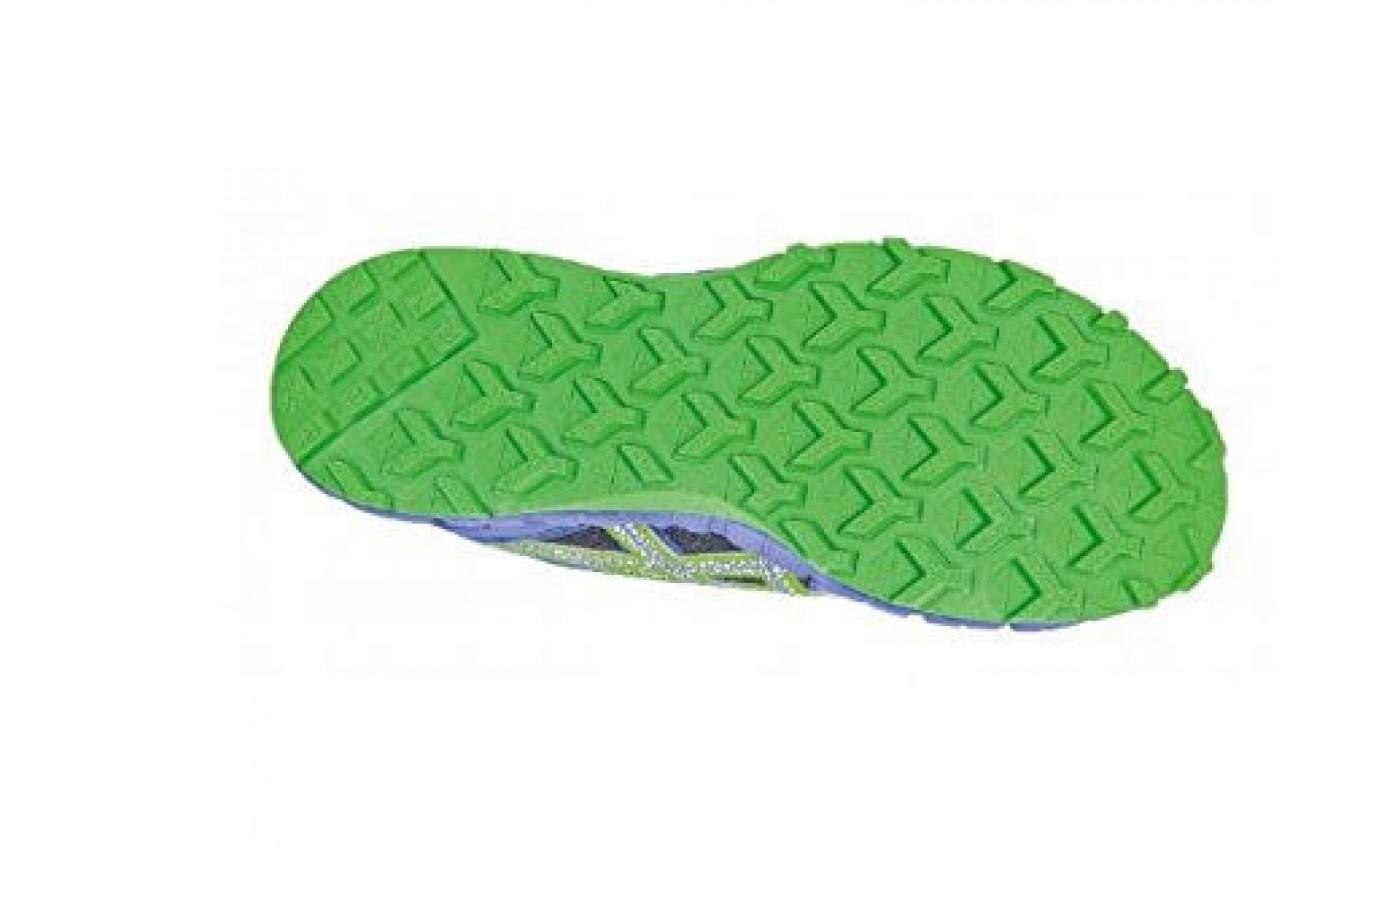 Lugged outsole has great traction for trail runs